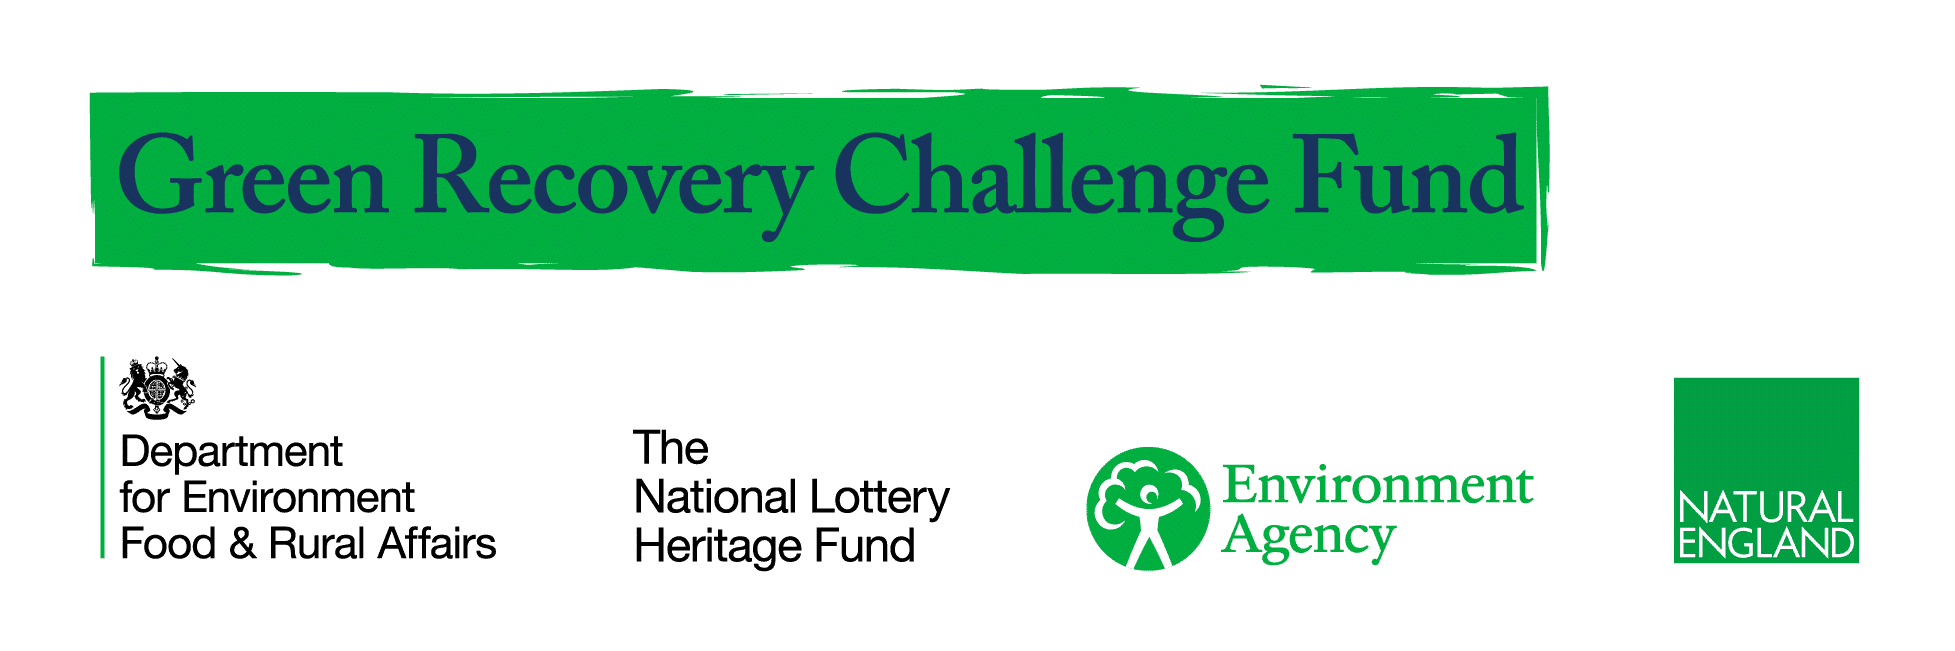 Green Recovery Challnge Fund Logo